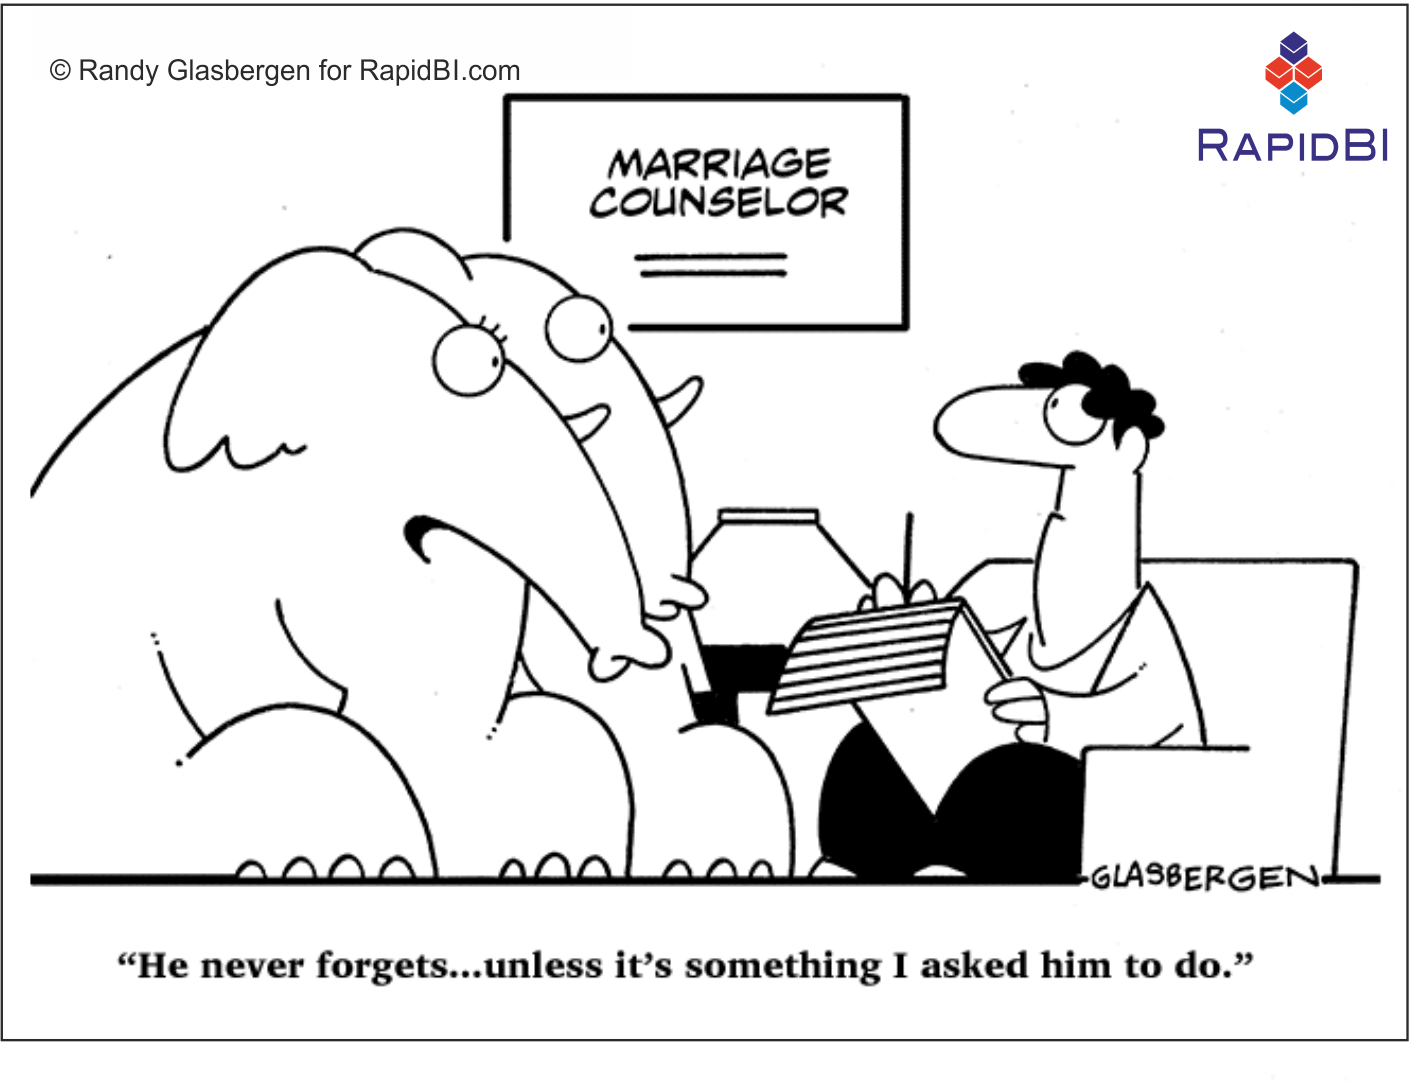 RapidBI Daily Cartoon #6 A look at the lighter side of